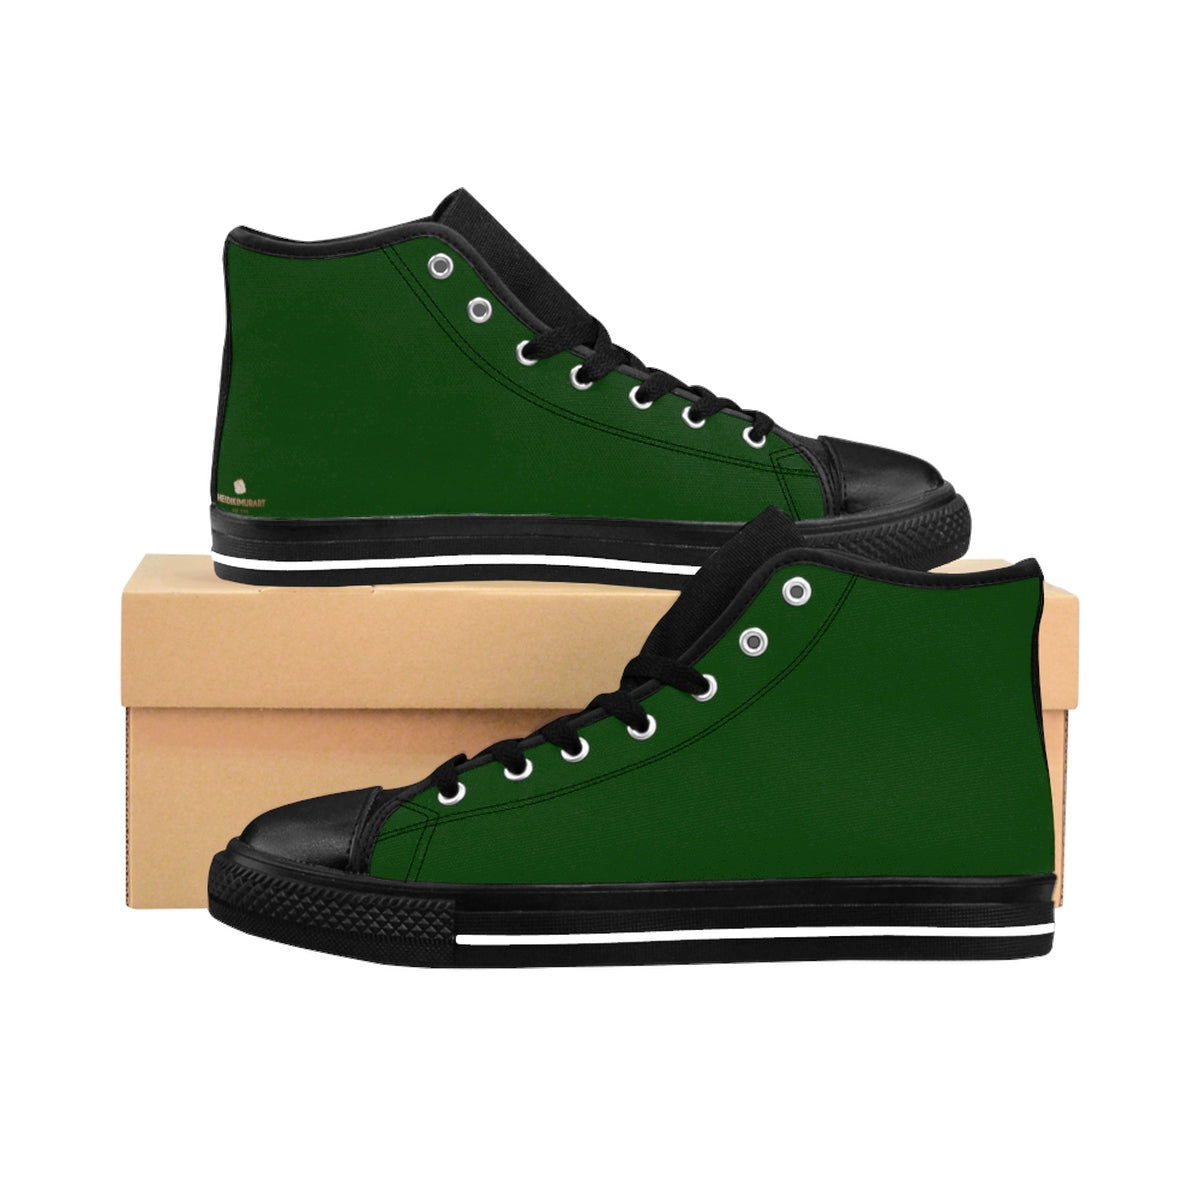 Evergreen Forest Green Solid Color Women's High Top Sneakers Running Shoes-Women's High Top Sneakers-US 9-Heidi Kimura Art LLC Green Women's High Top Sneakers, Evergreen Forest Green Solid Color Women's High Top Sneakers Running Shoes (US Size: 6-12) Designed in the USA